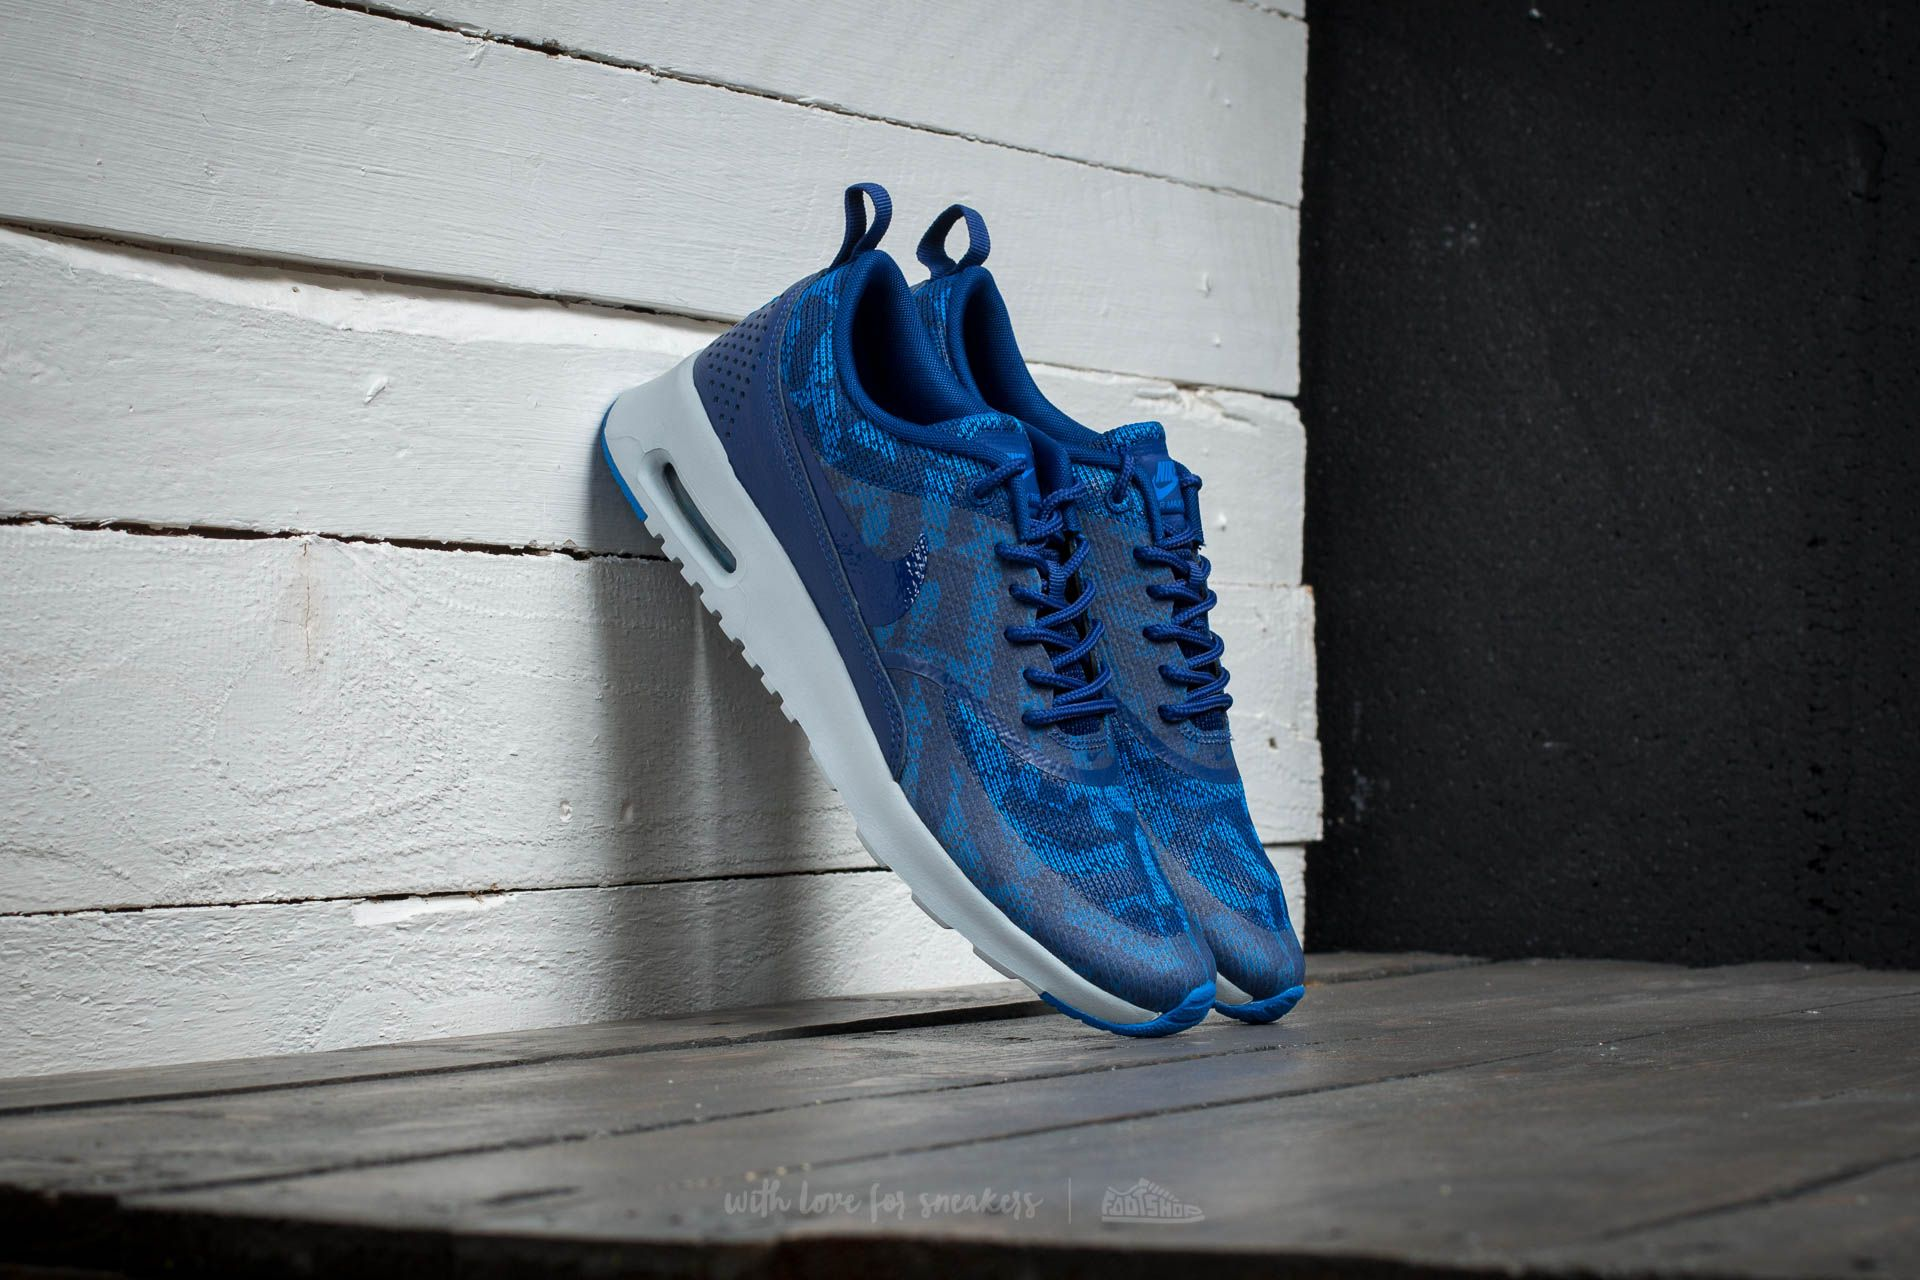 W Thea Air Deep BlueFootshop Nike Max Kjcrd Royal 8wXn0NOPk